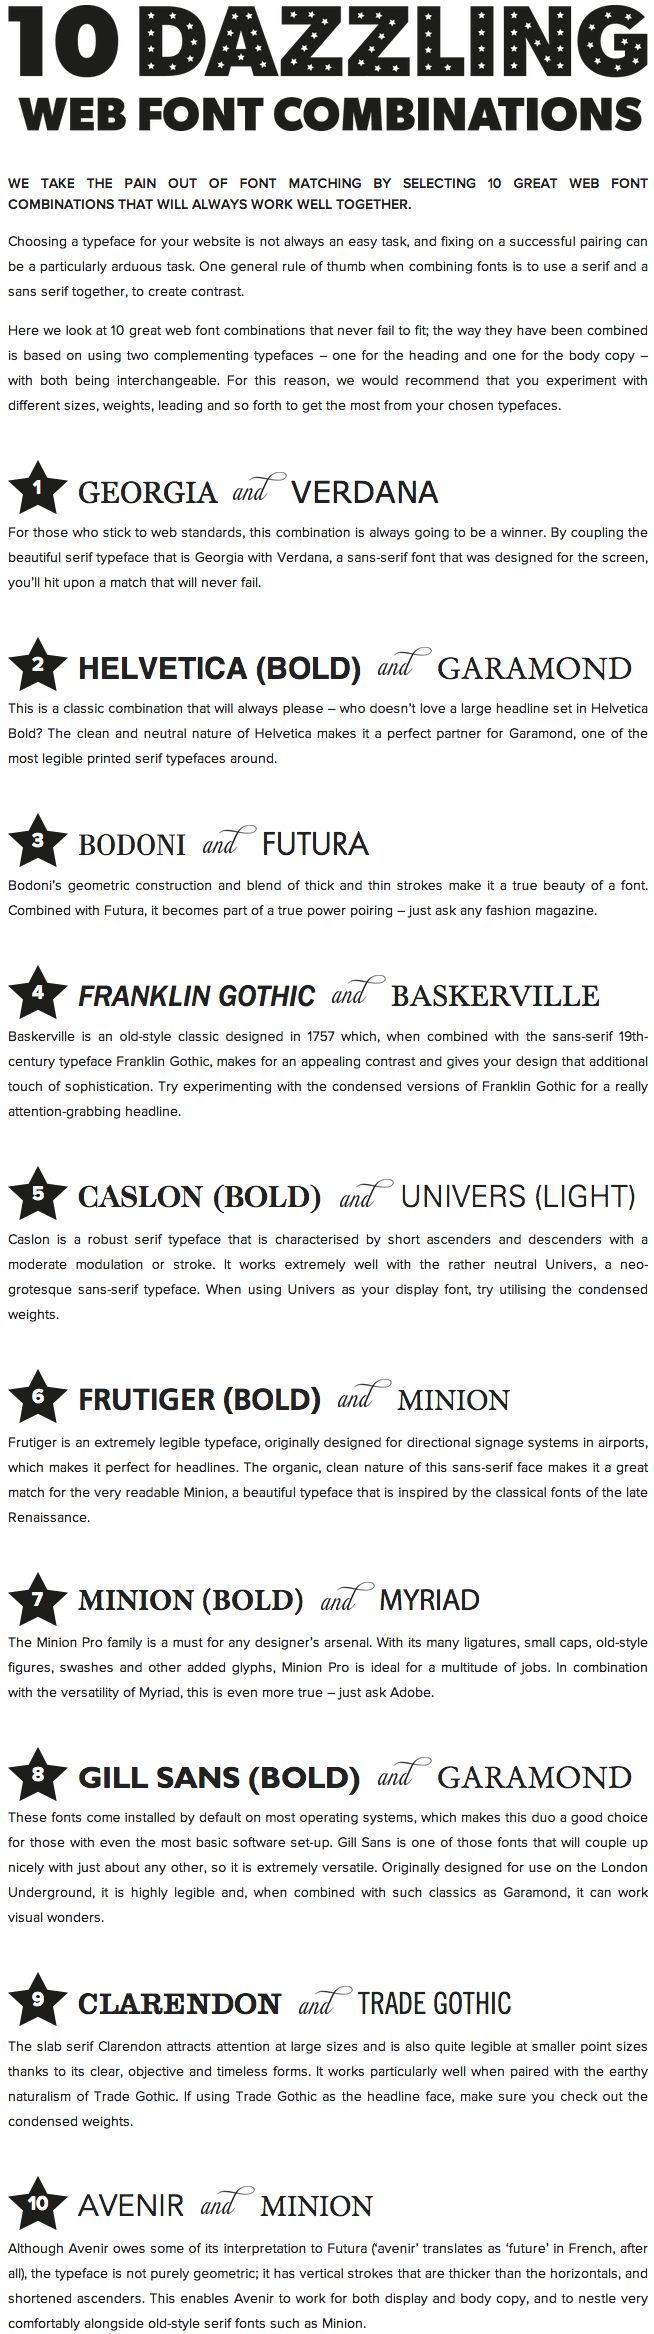 10 Great Web Font Combinations...I like Clarendon and Trade Gothic together (No. 9).